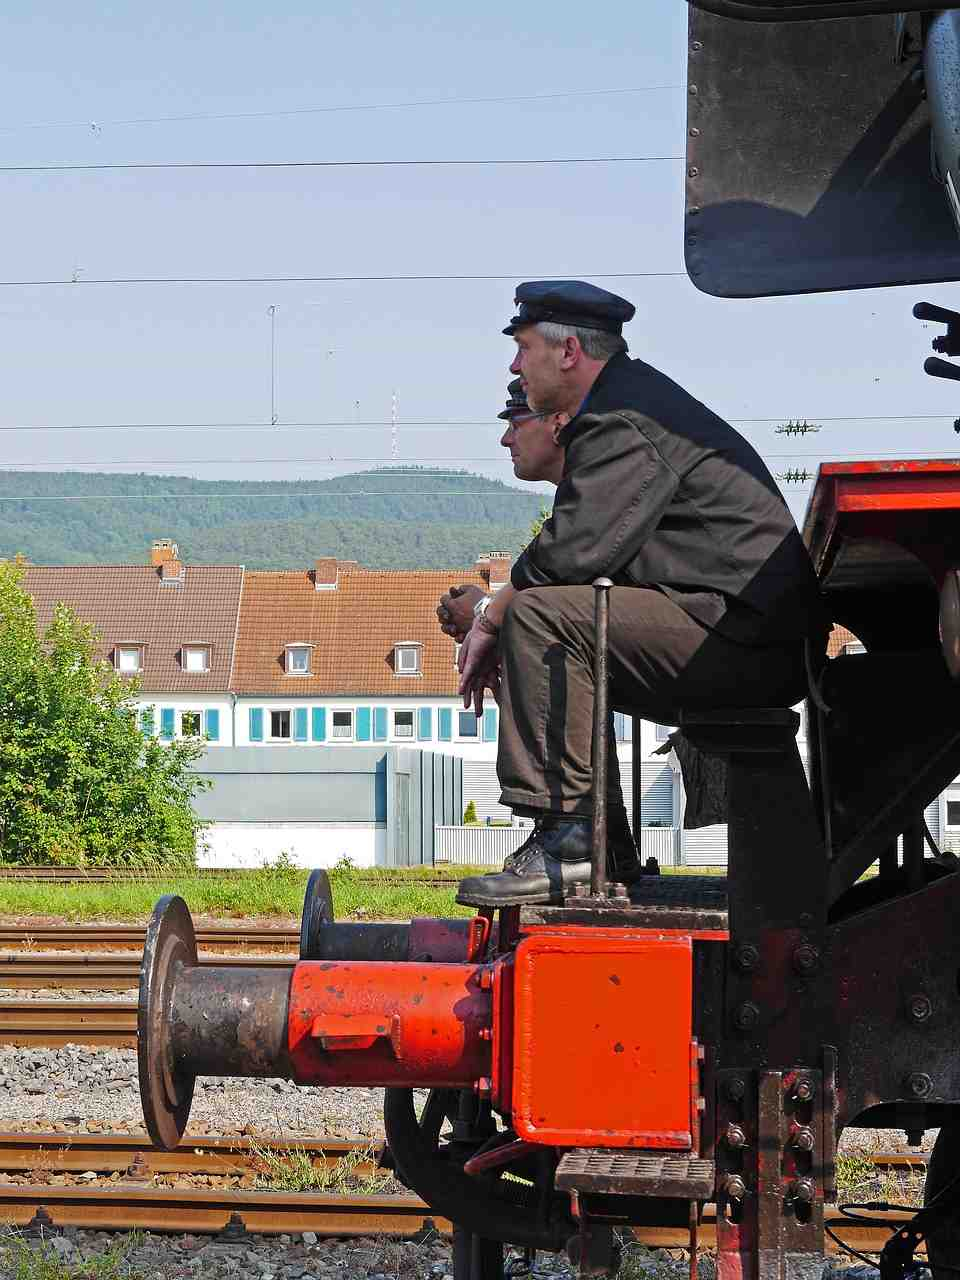 locomotive à vapeur, conducteur de train, chauffeur